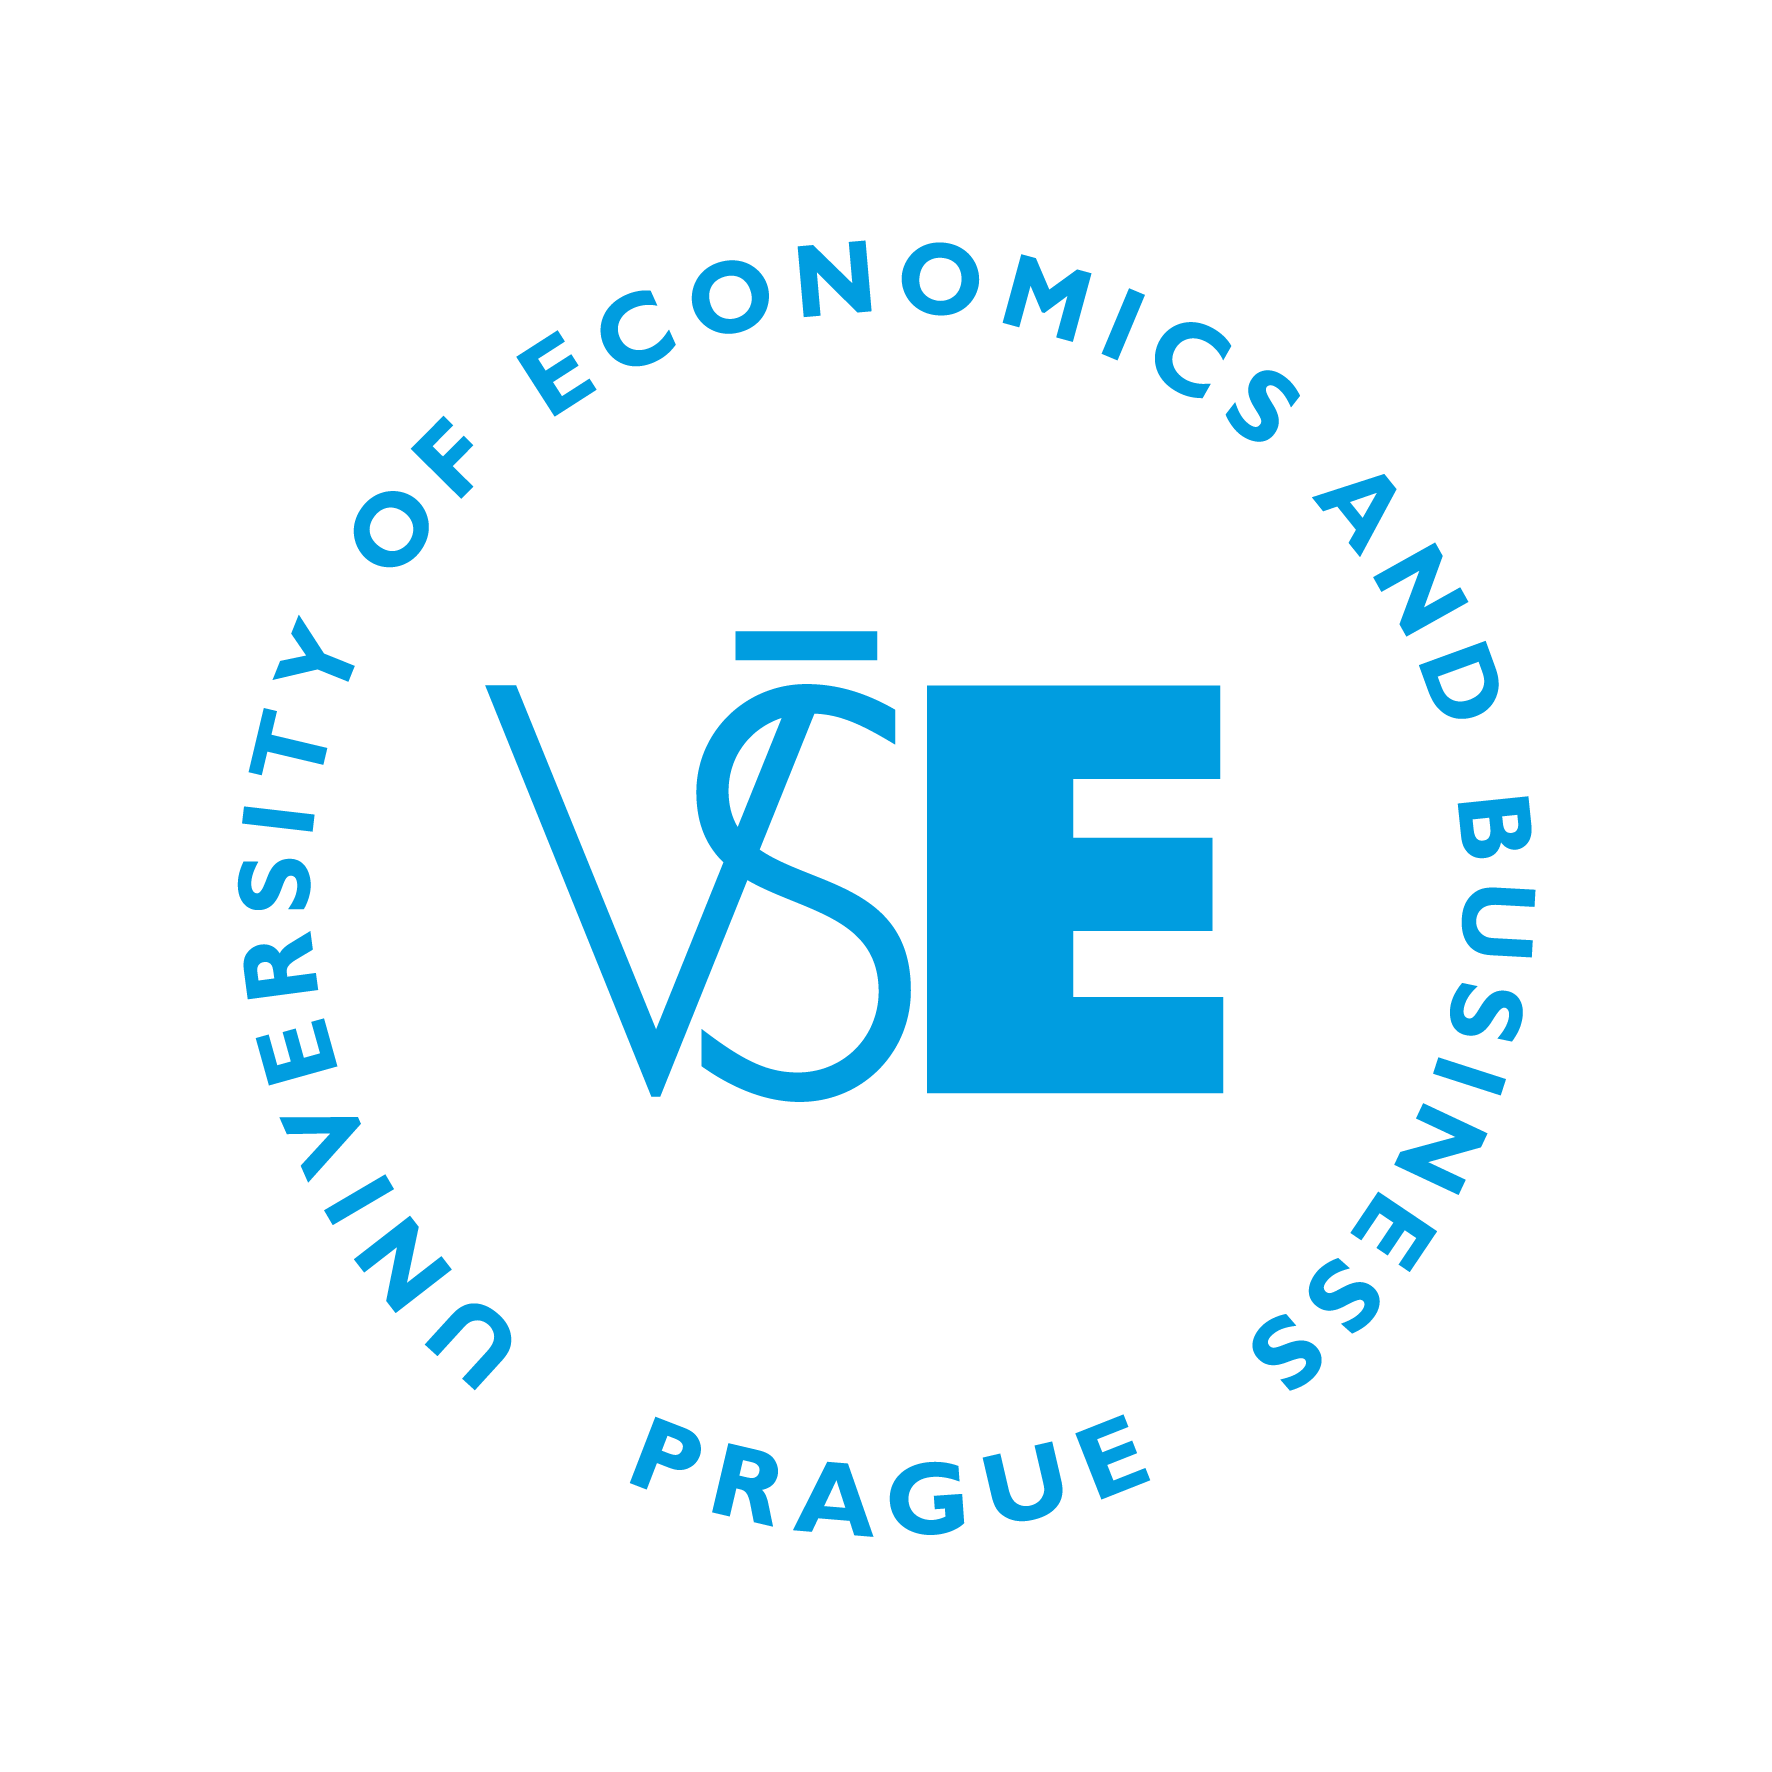 New brand name of VŠE in English is Prague University of Economics and Business